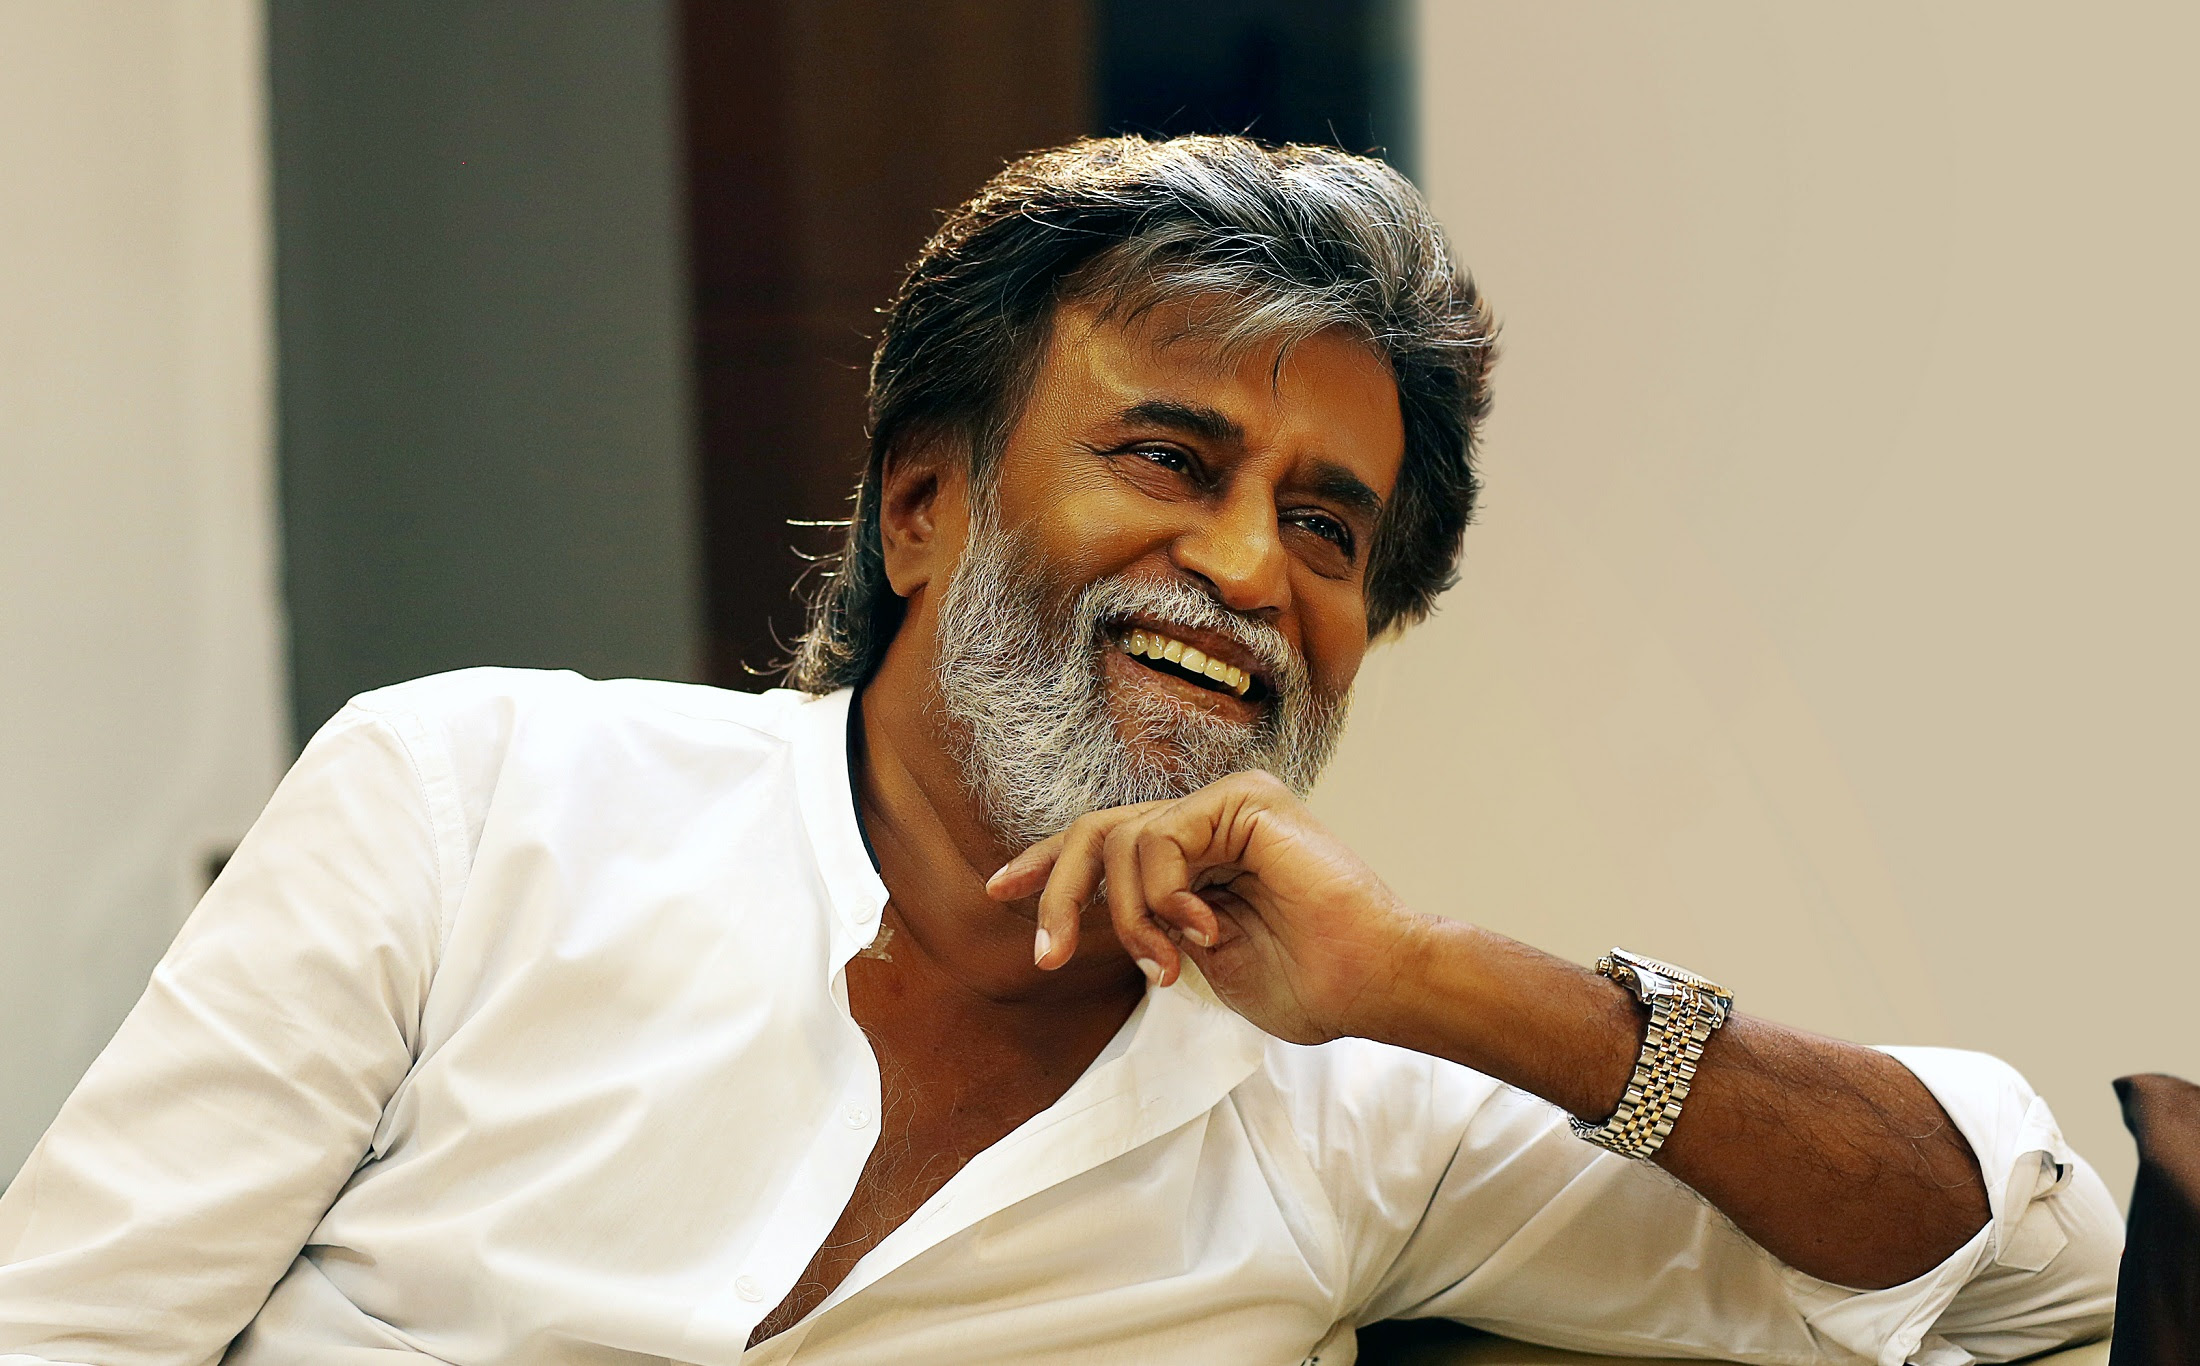 How The Name Rajini Kanth Was Transformed Into A Brand